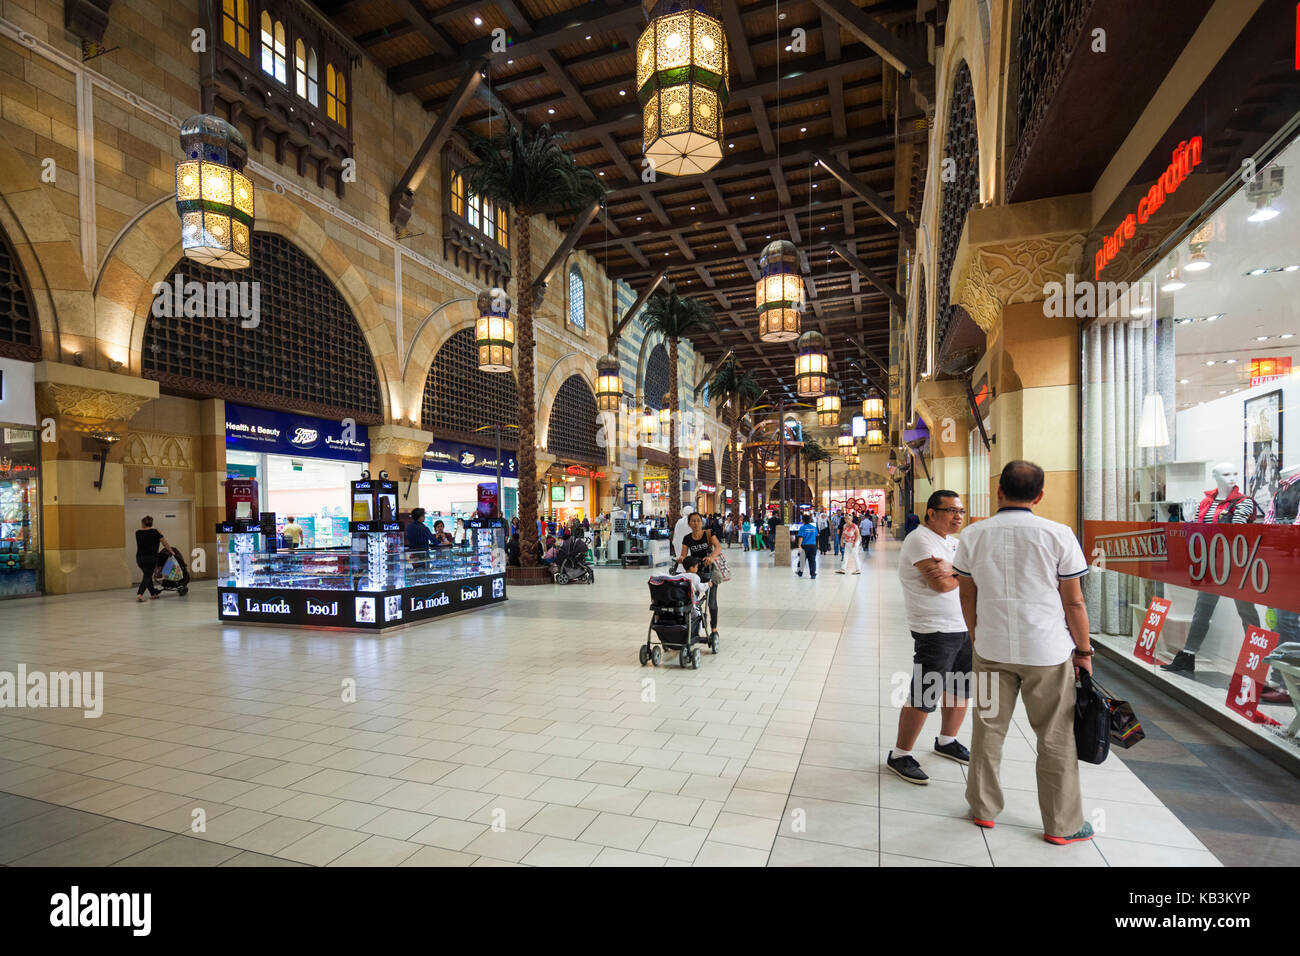 UAE, Dubai, Western Dubai, Ibn Battuta Mall, shopping mall built with six courts representing voyages by 14th century - Stock Image